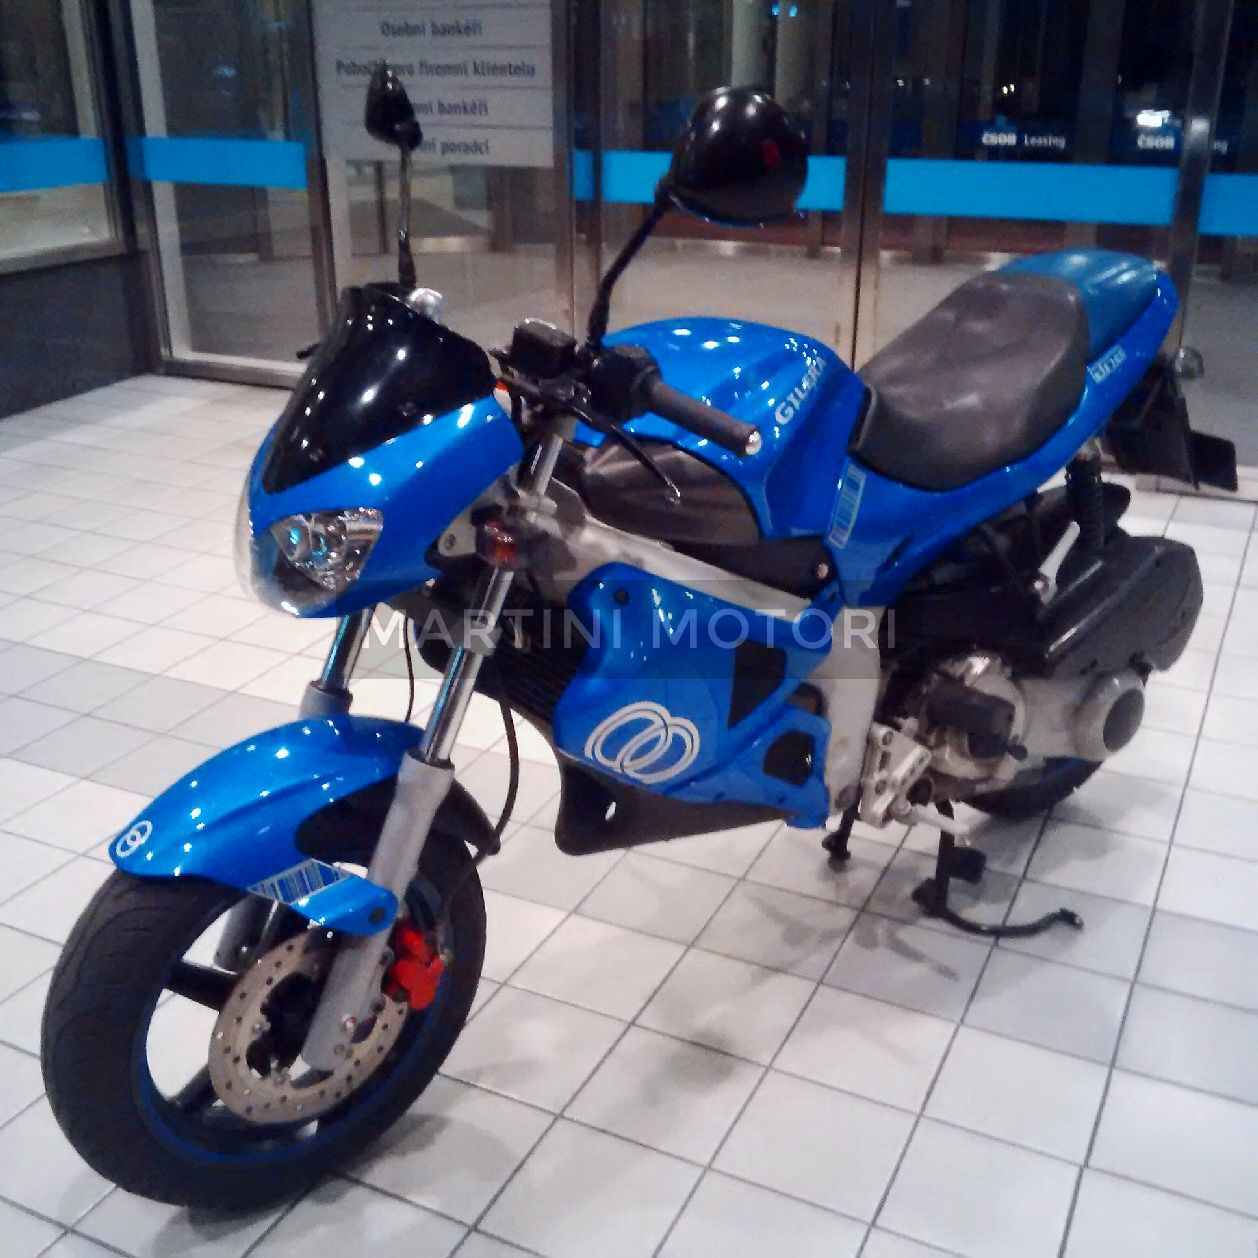 Gilera DNA 125 2004 images #73648